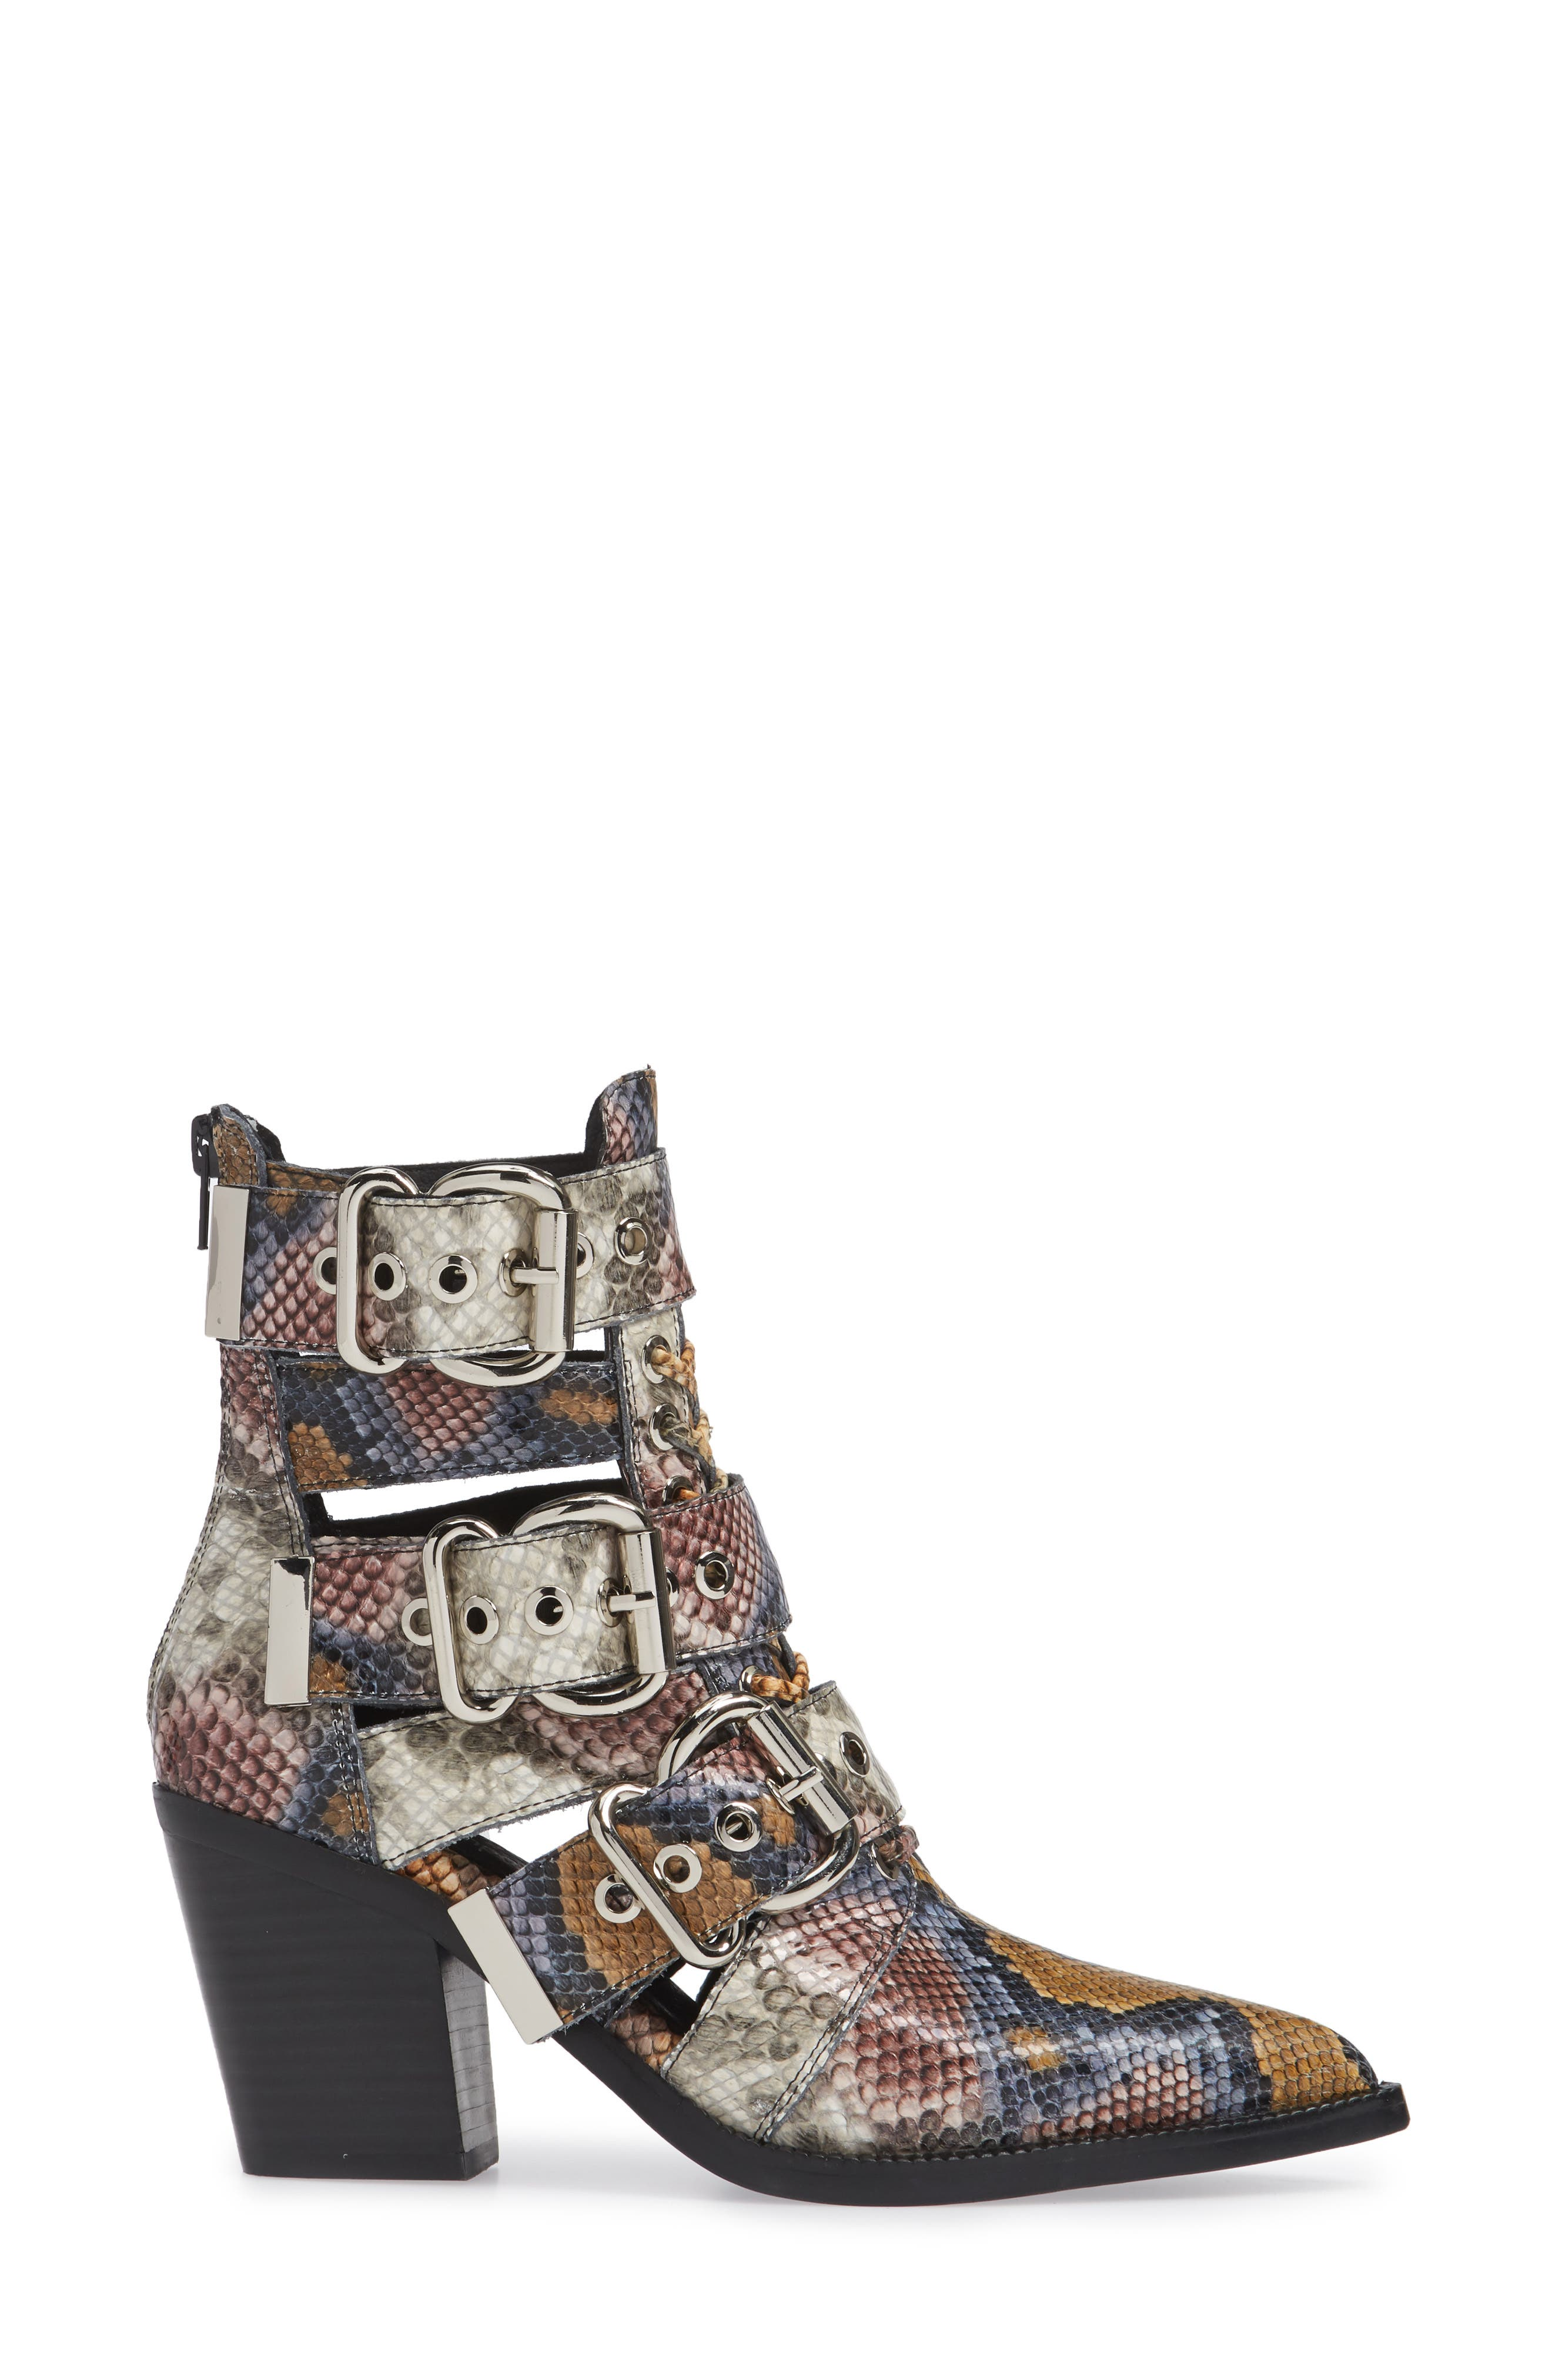 Caceres Bootie,                             Alternate thumbnail 3, color,                             GREY WINE SNAKE PRINT